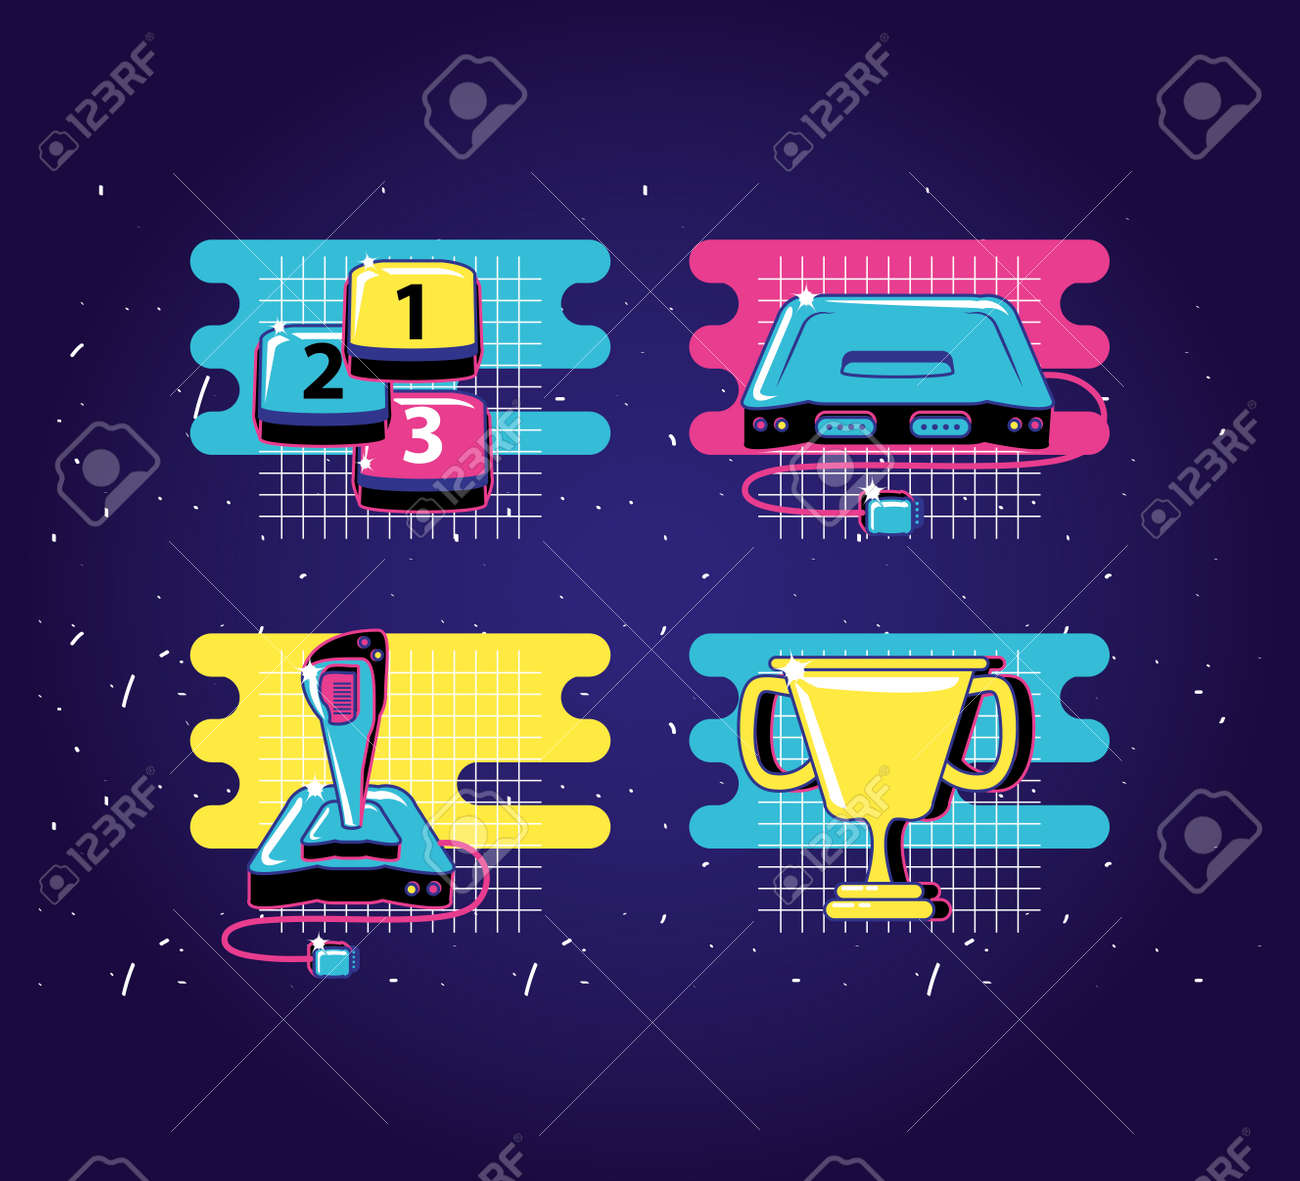 set icons of devices video game retro style vector illustration design - 153944915